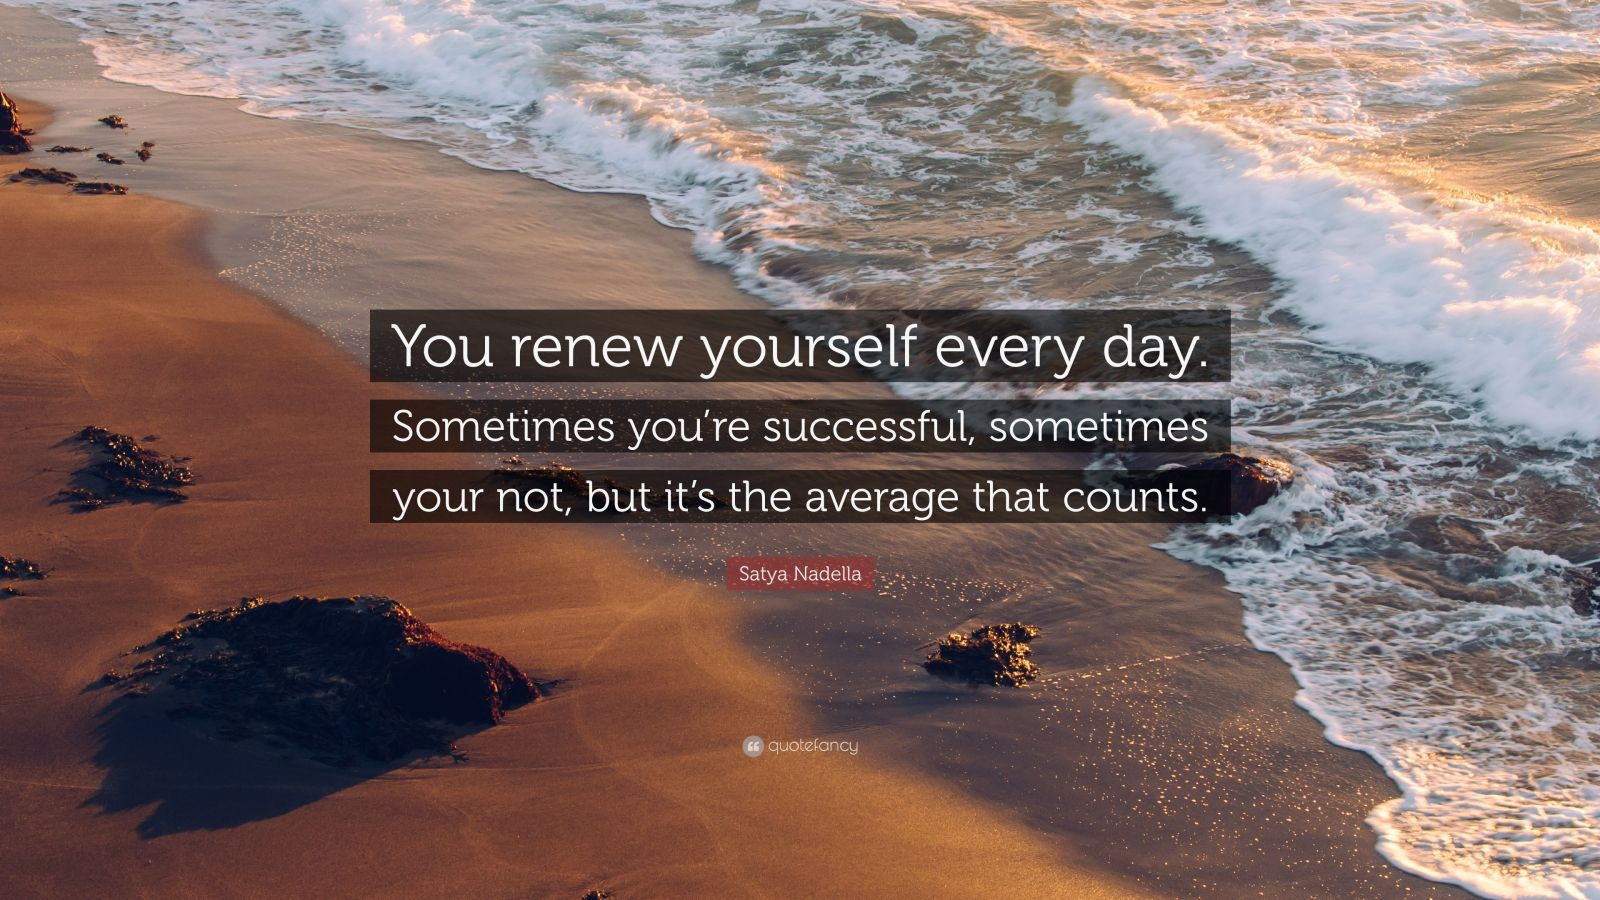 """Satya Nadella Quote: """"You renew yourself every day. Sometimes you're successful, sometimes your not, but it's the average that counts."""""""